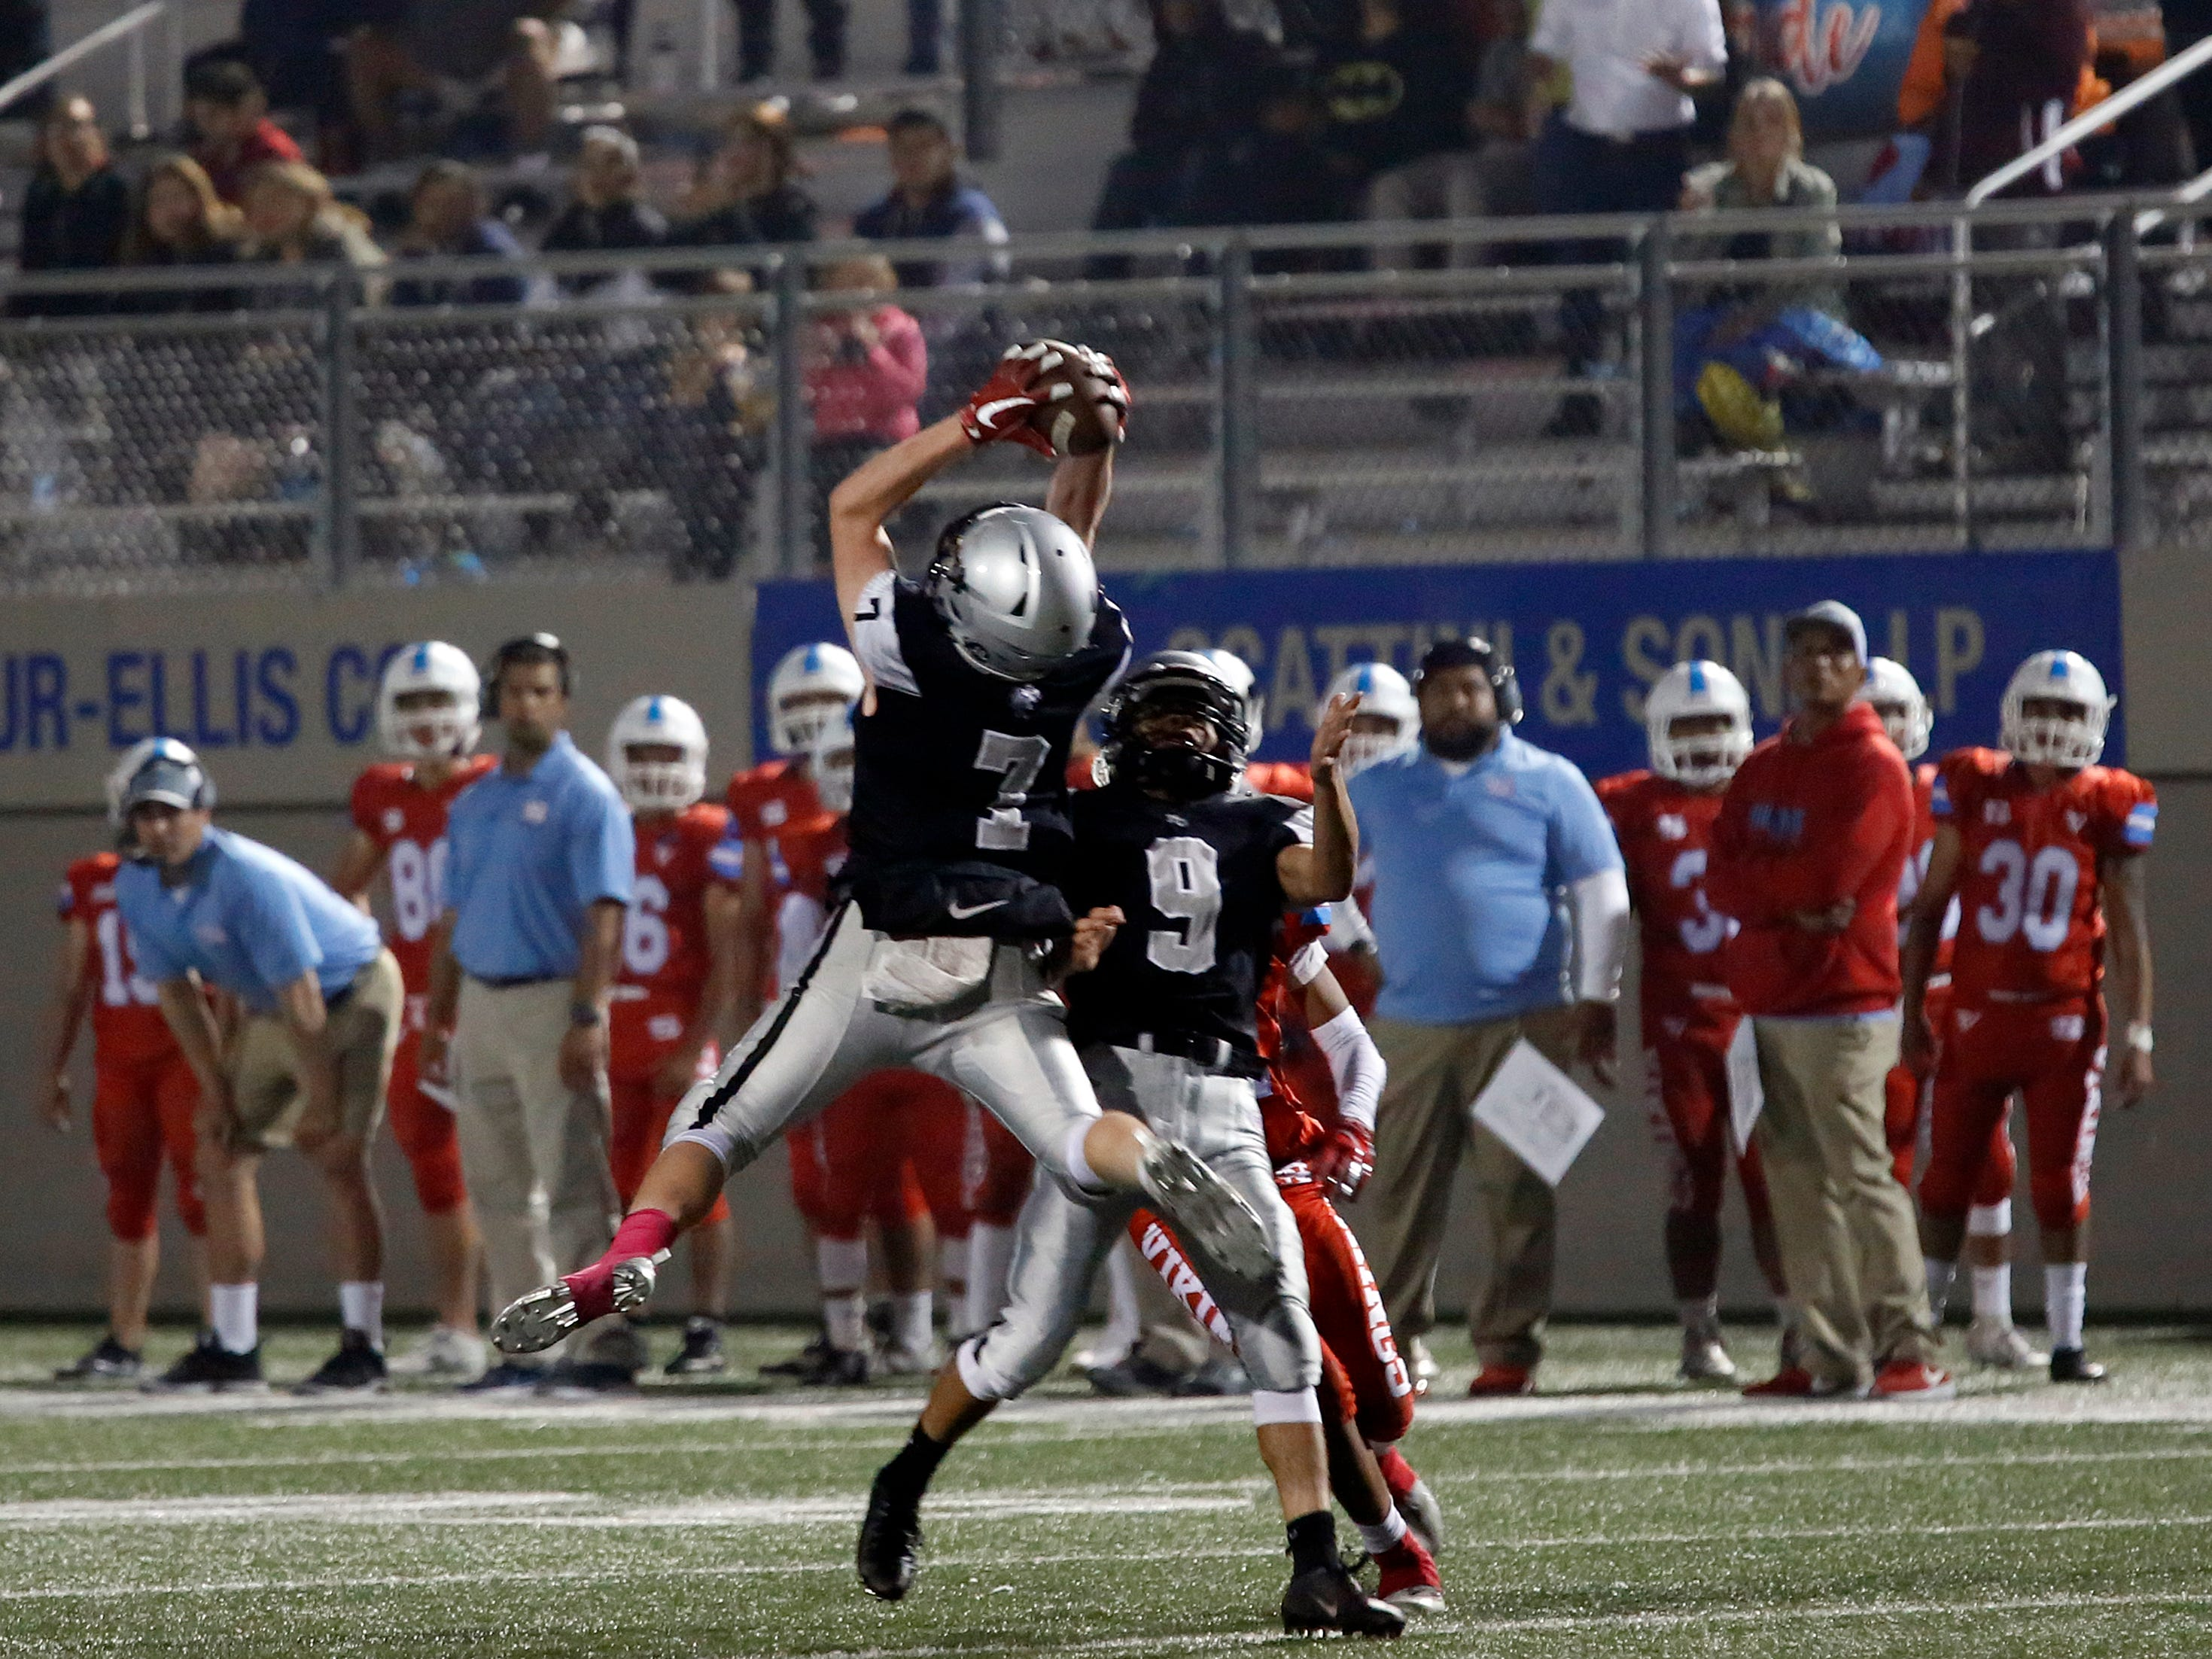 North Monterey County's Riley Anderson makes an interception against North Salinas during football at Rabobank Stadium in Salinas on Thursday August 23, 2018.